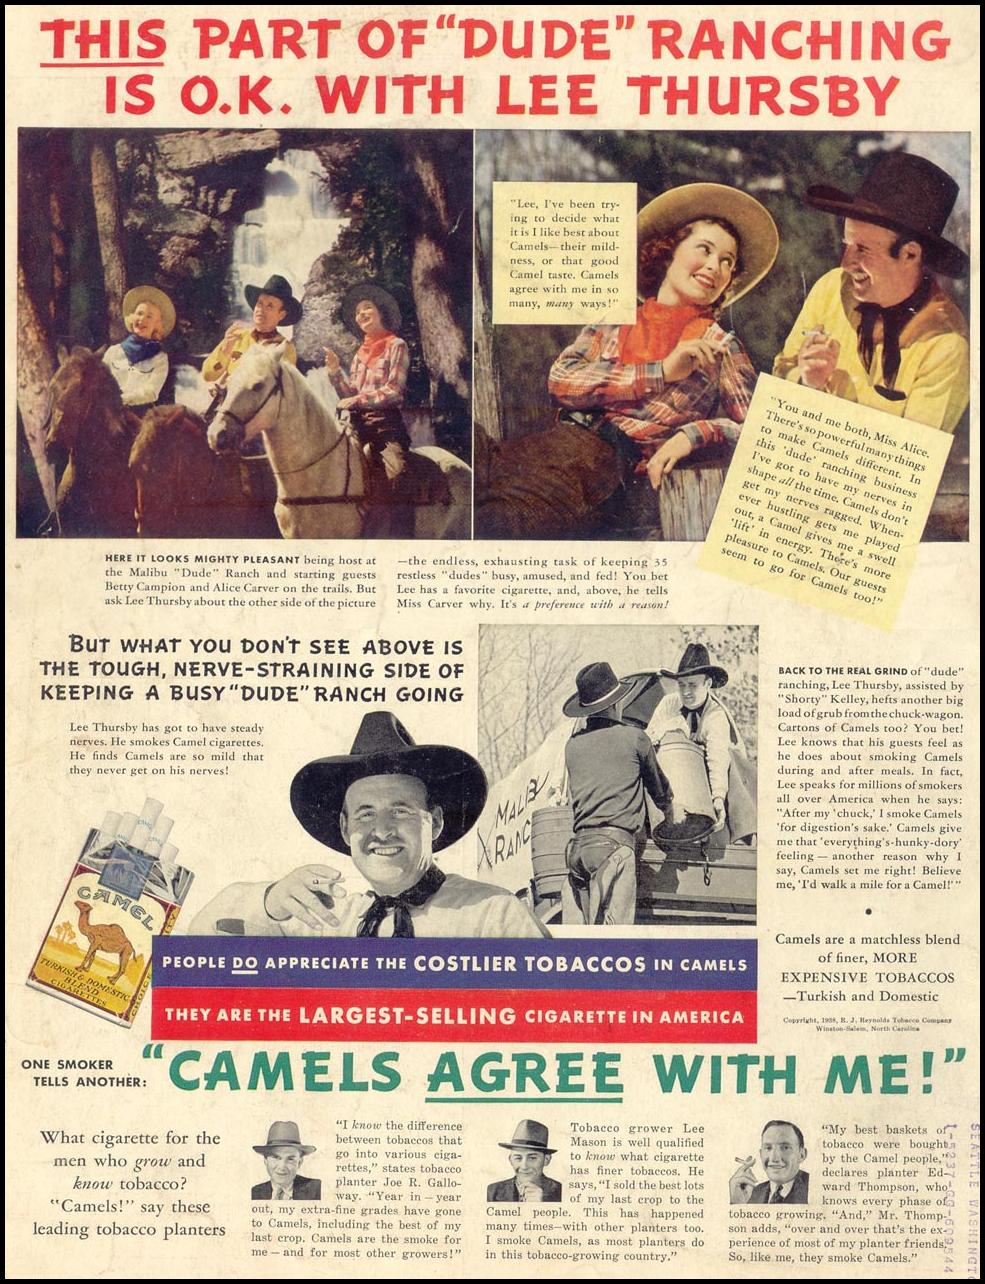 CAMEL CIGARETTES LIFE 07/18/1938 BACK COVER